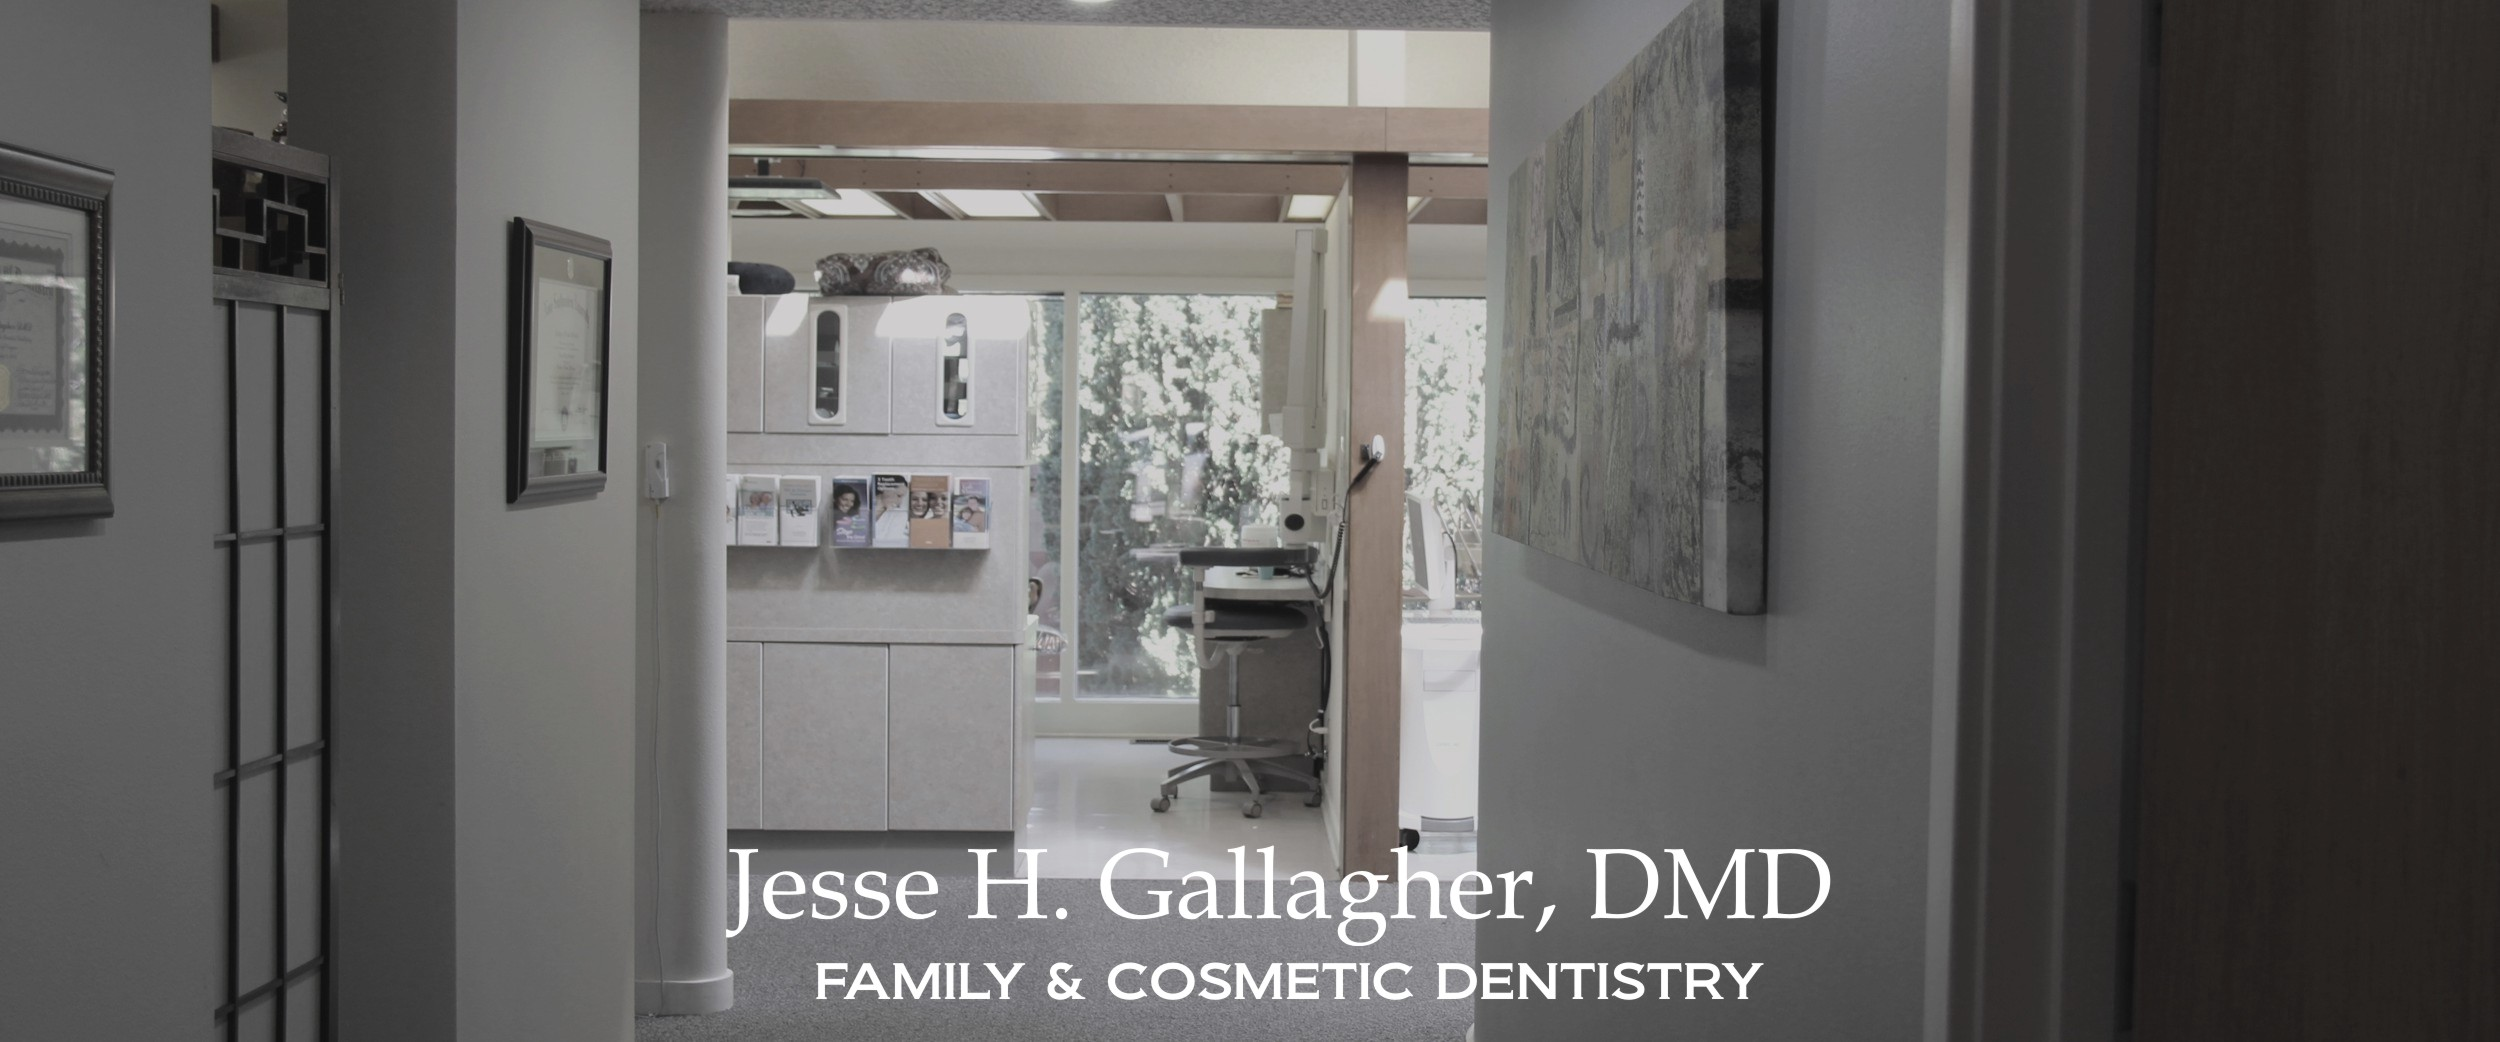 images/slide/dental-office-medford-oregon.jpg